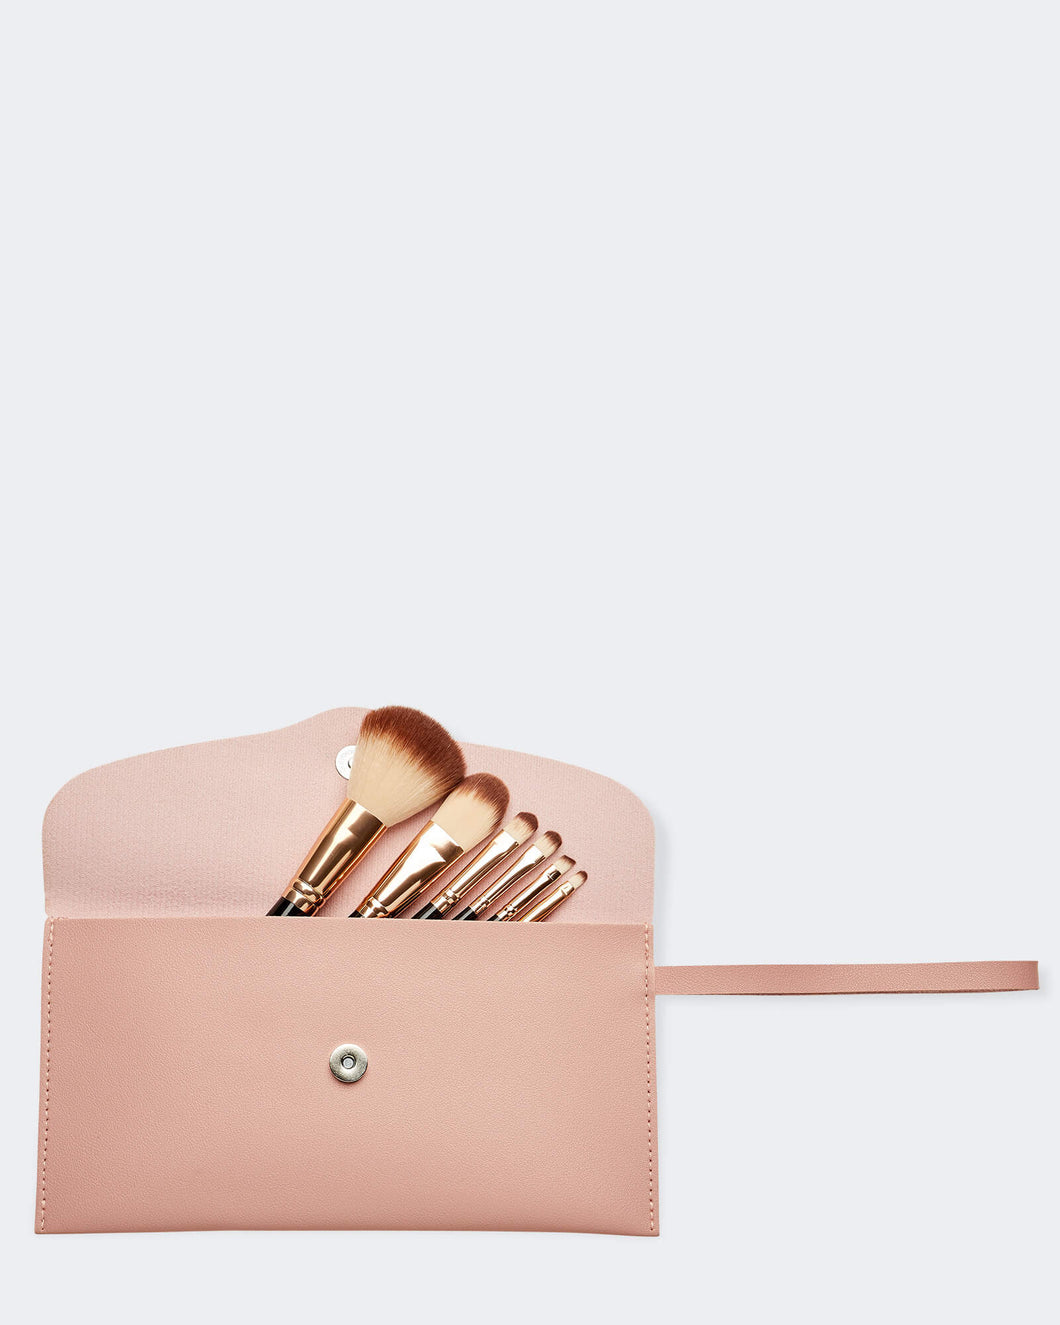 Louenhide Bags Makeup Brush Set – Pale Pink One Country Mouse Yamba